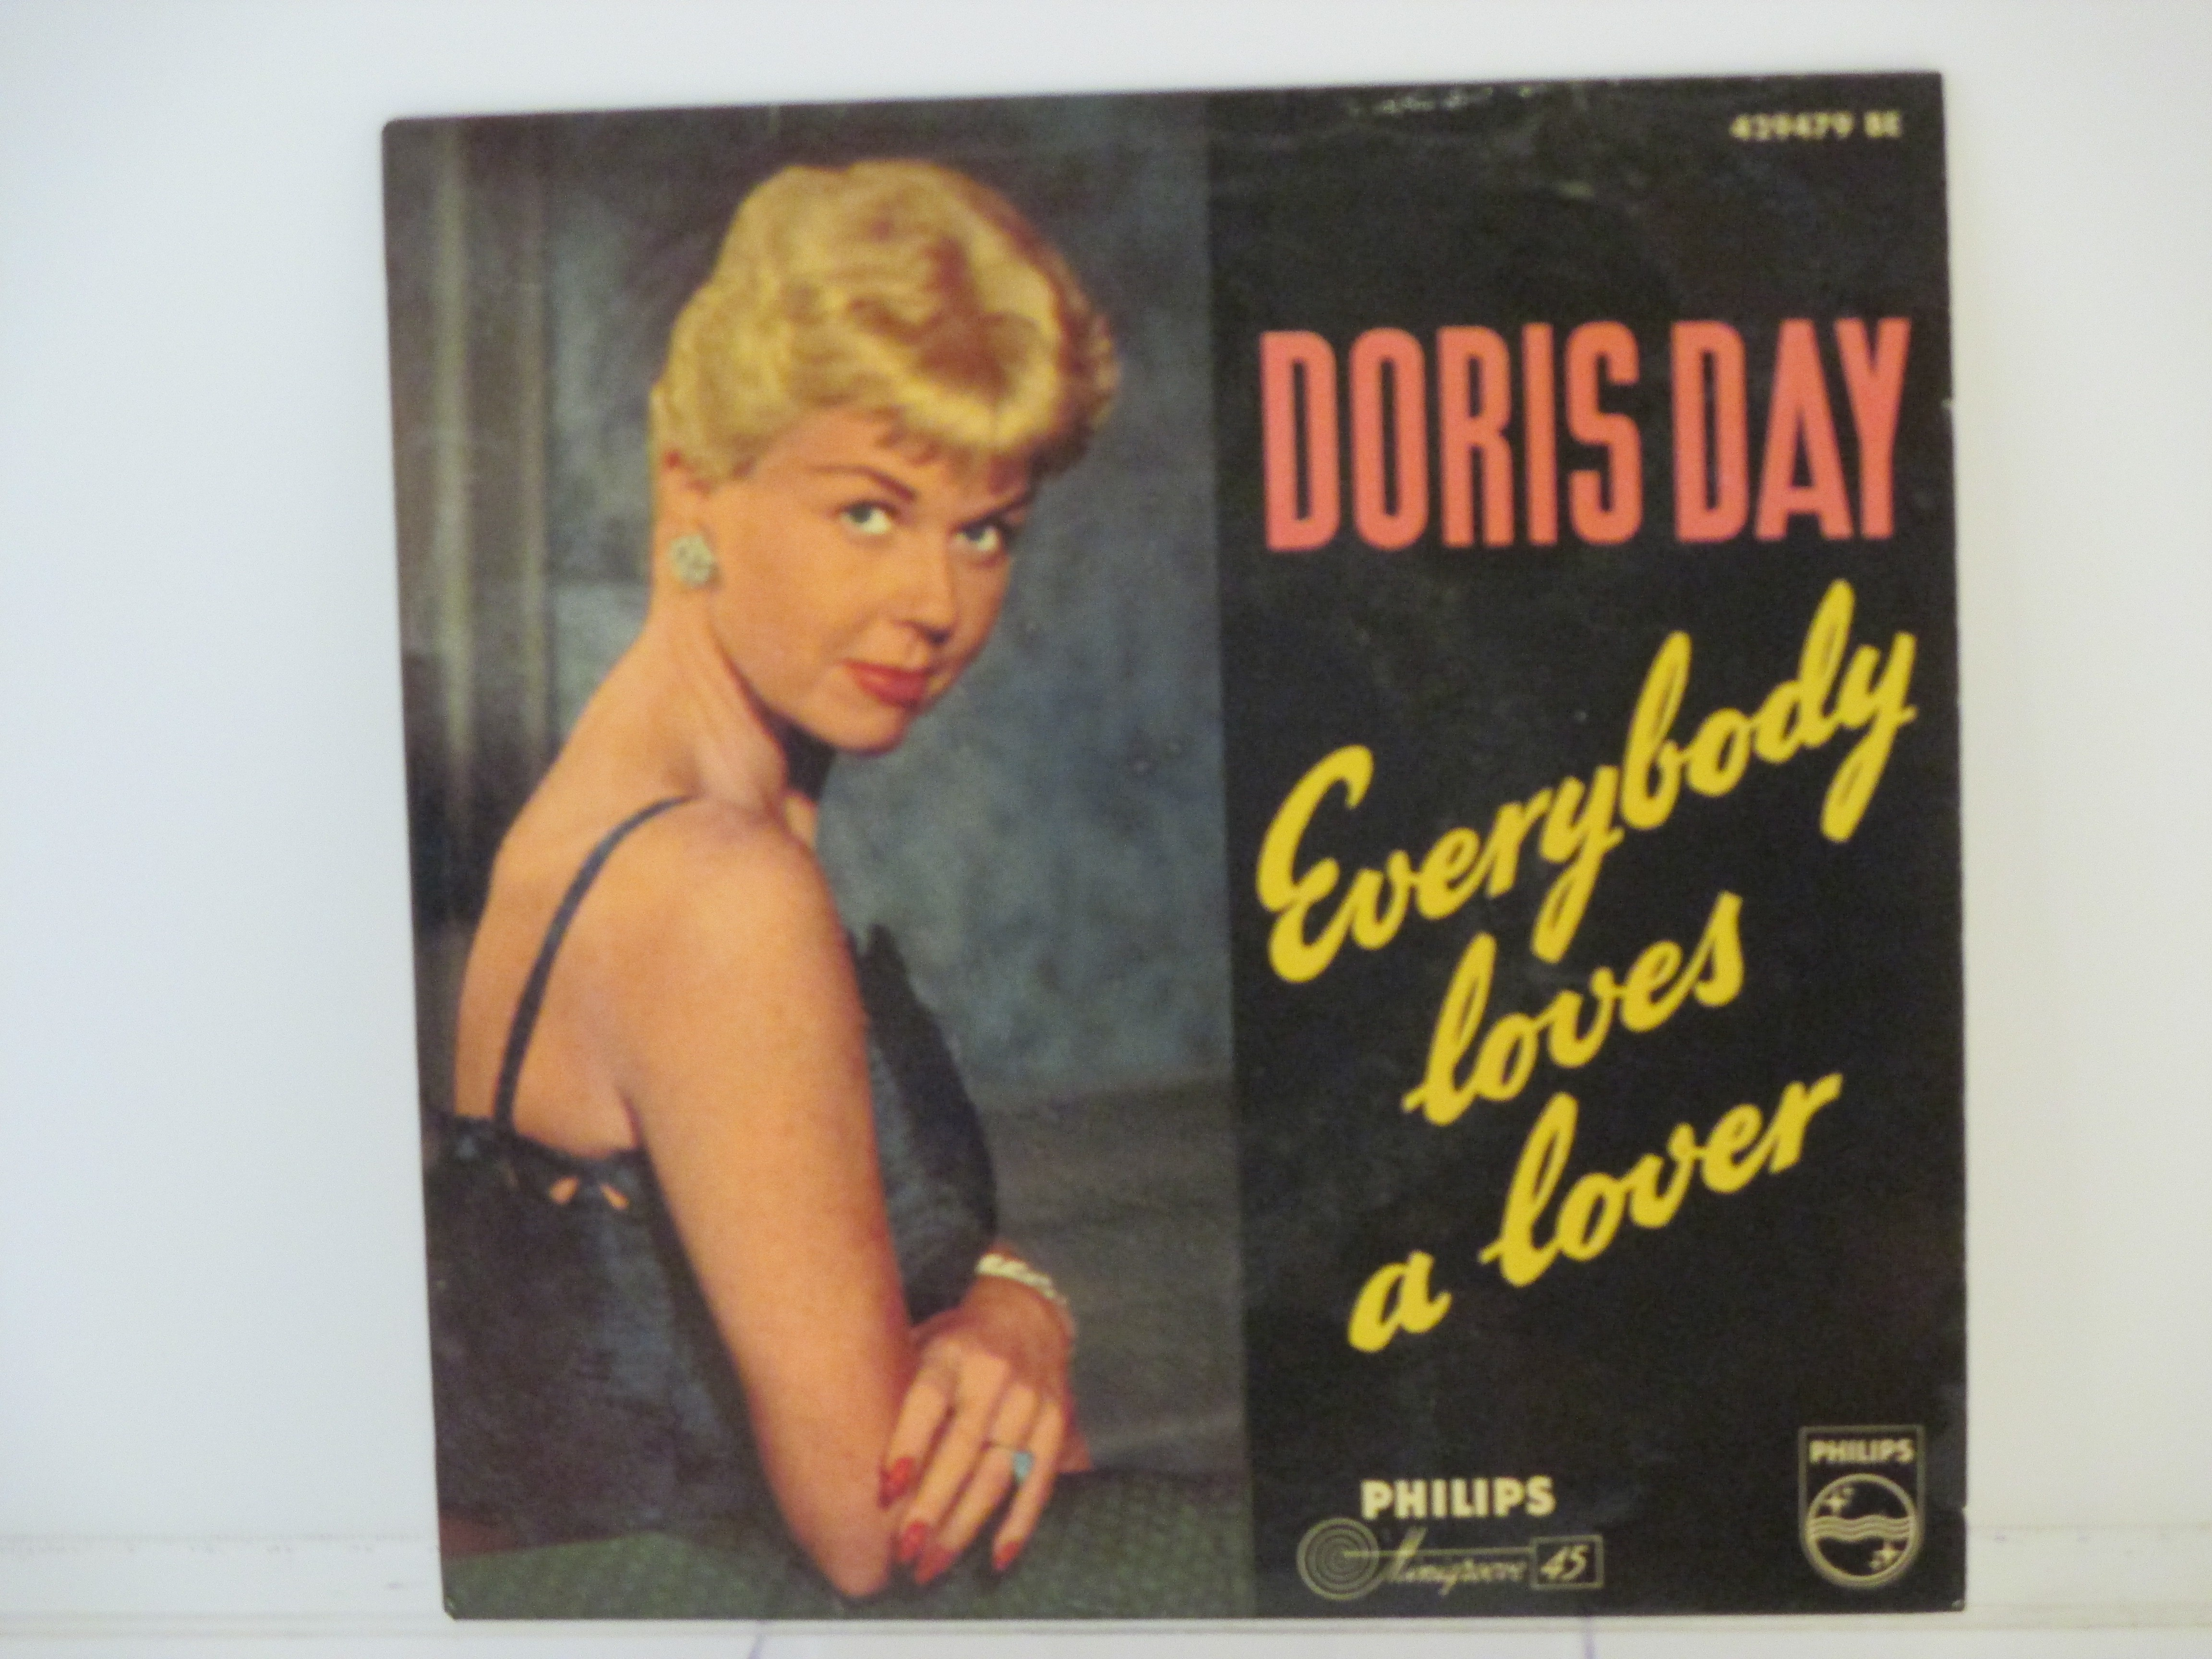 DORIS DAY : (EP) Everybody loves a lover / Chalk line / Instant love / Whad' ja put in that kiss